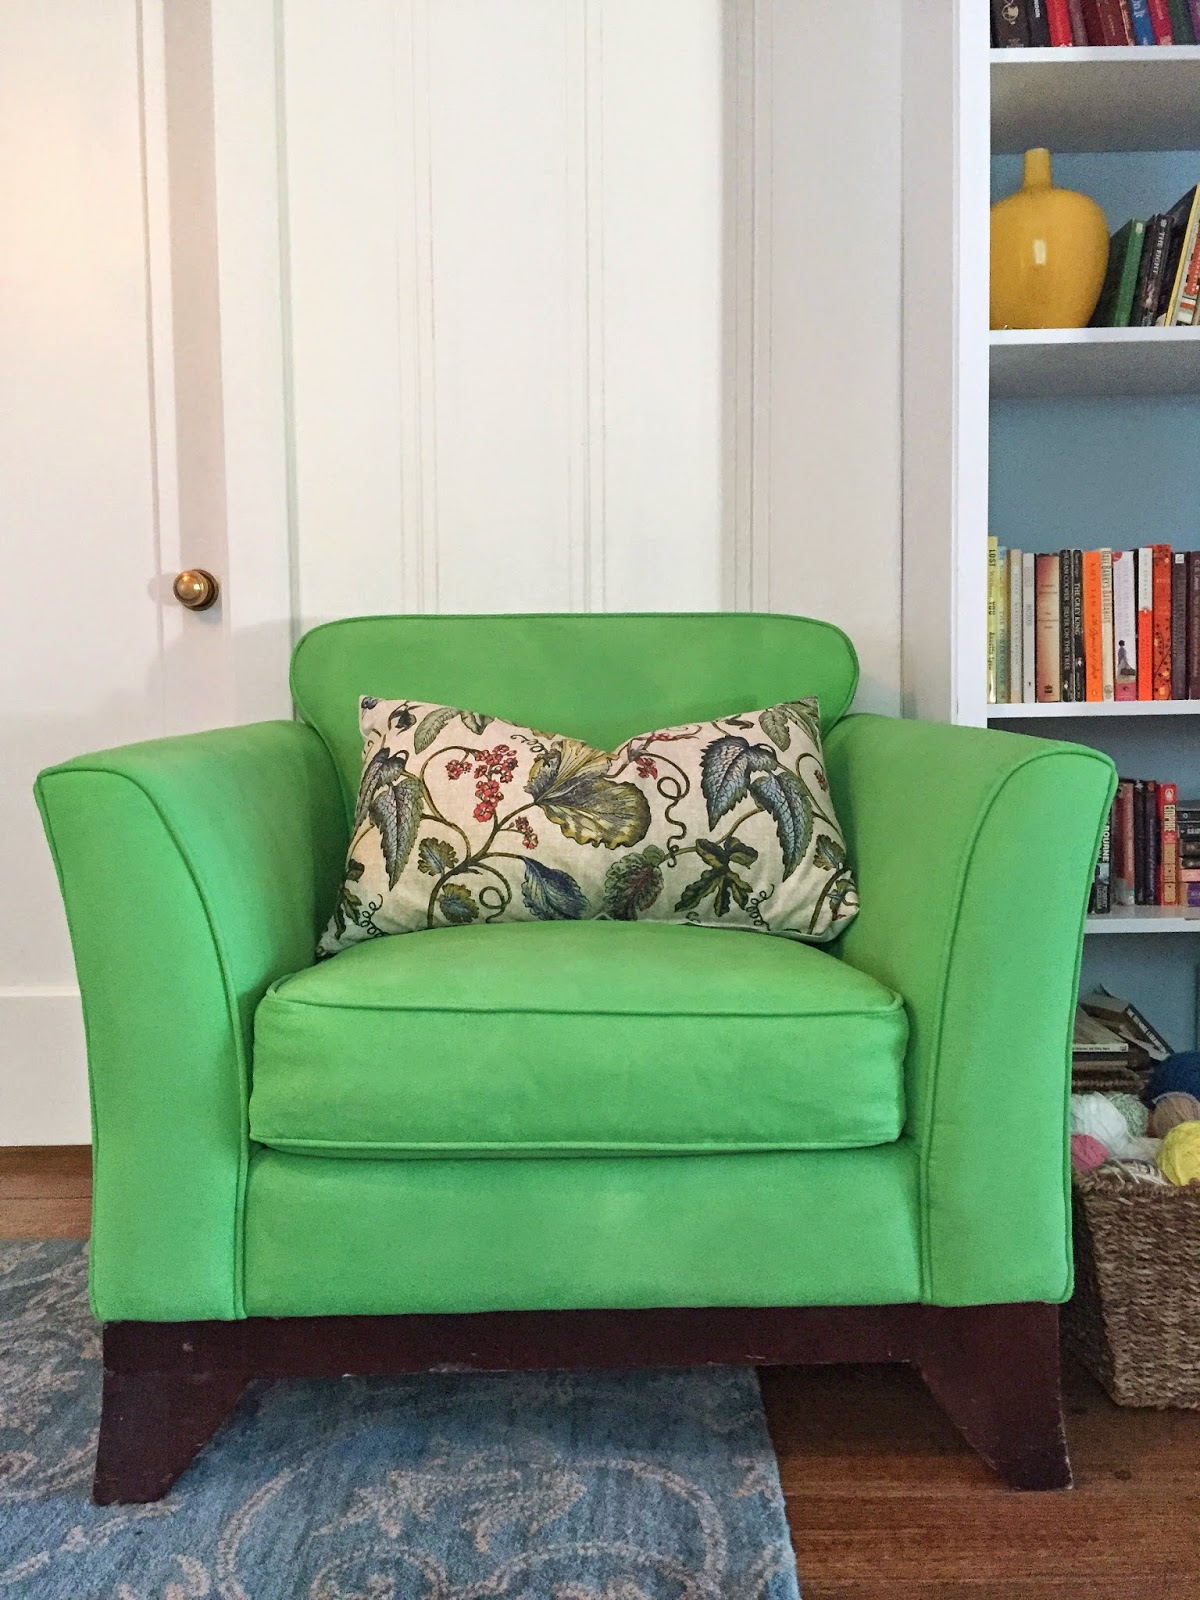 How To Paint Upholstery With Chalk Paint